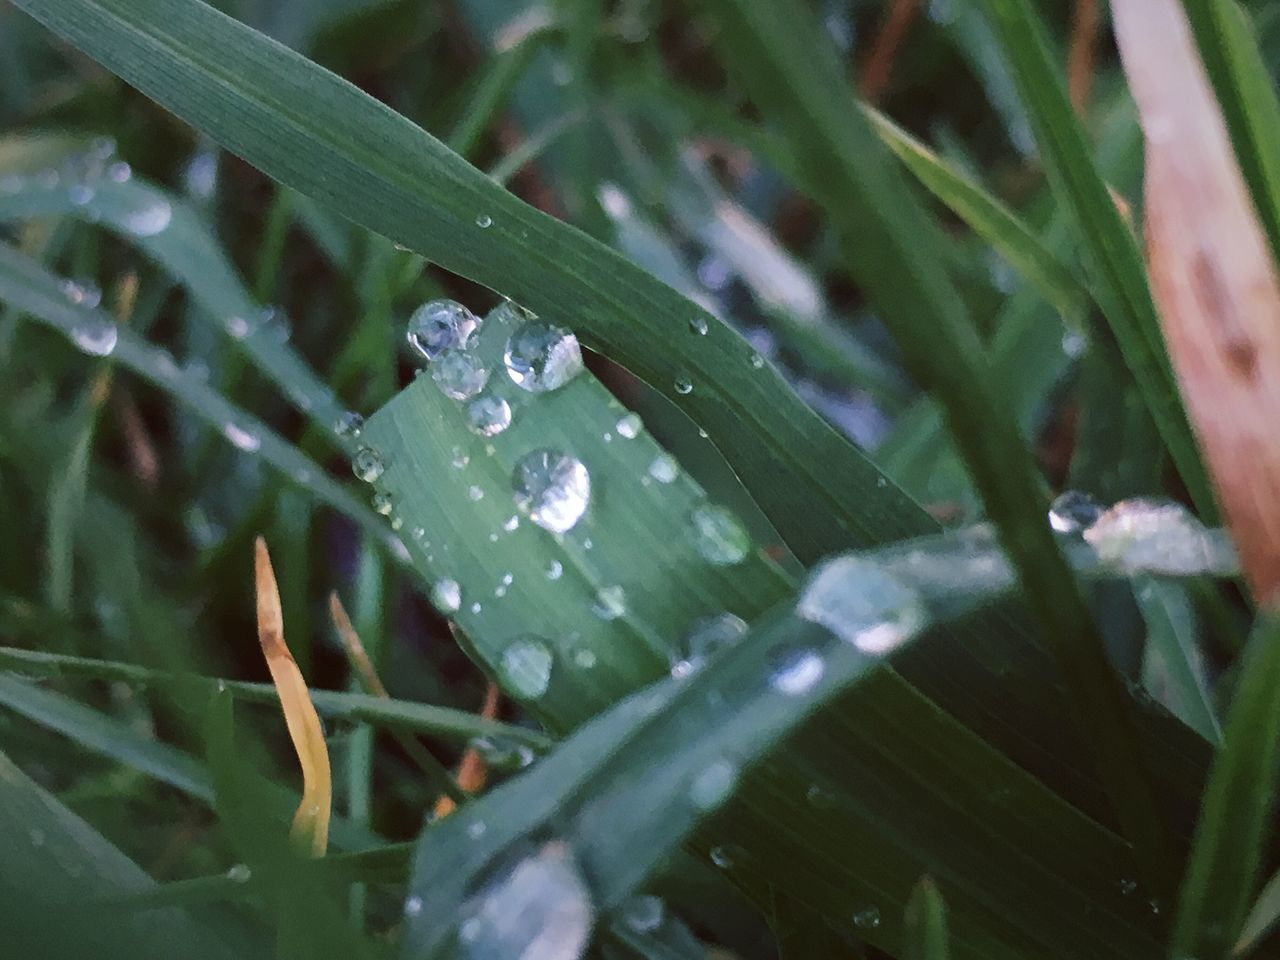 Drop Wet Rain Water Nature RainDrop Weather Leaf Purity Rainy Season Dew Fragility Freshness Plant Green Color No People Beauty In Nature Droplet Close-up Water Drop